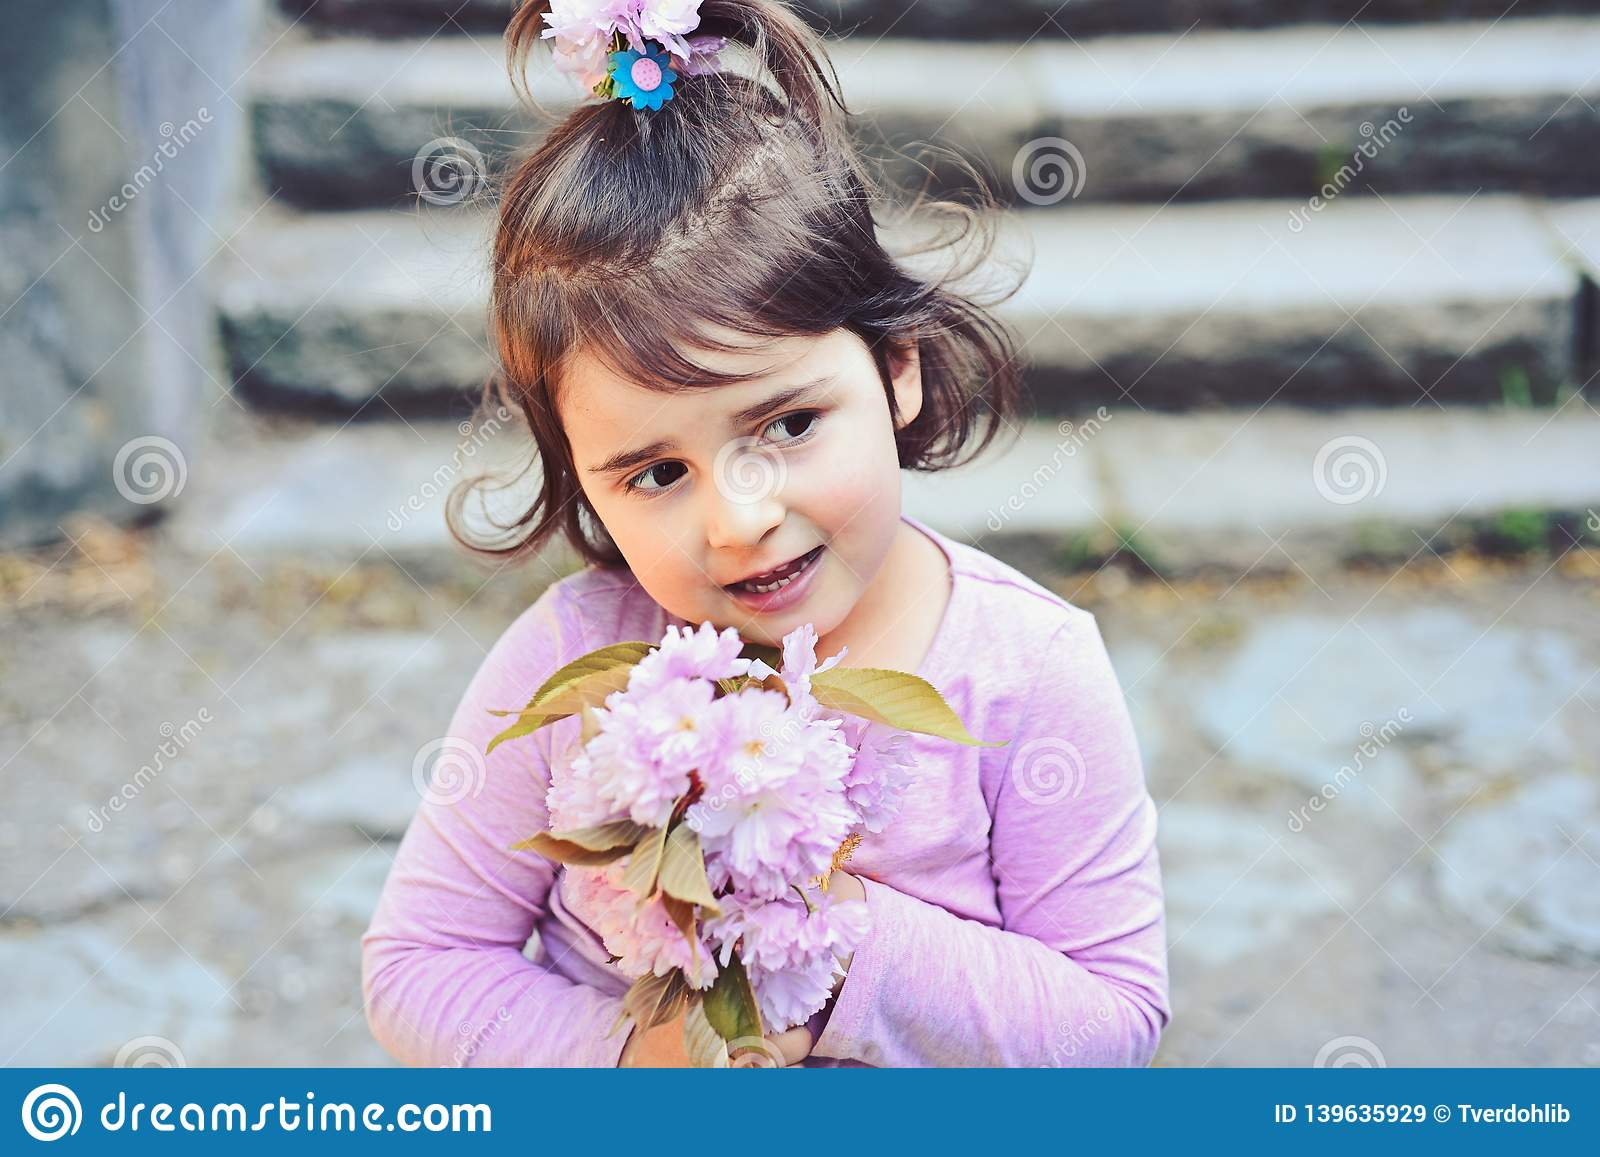 Face and skincare. allergy to flowers. Little girl in sunny spring. Springtime. weather forecast. Summer girl fashion